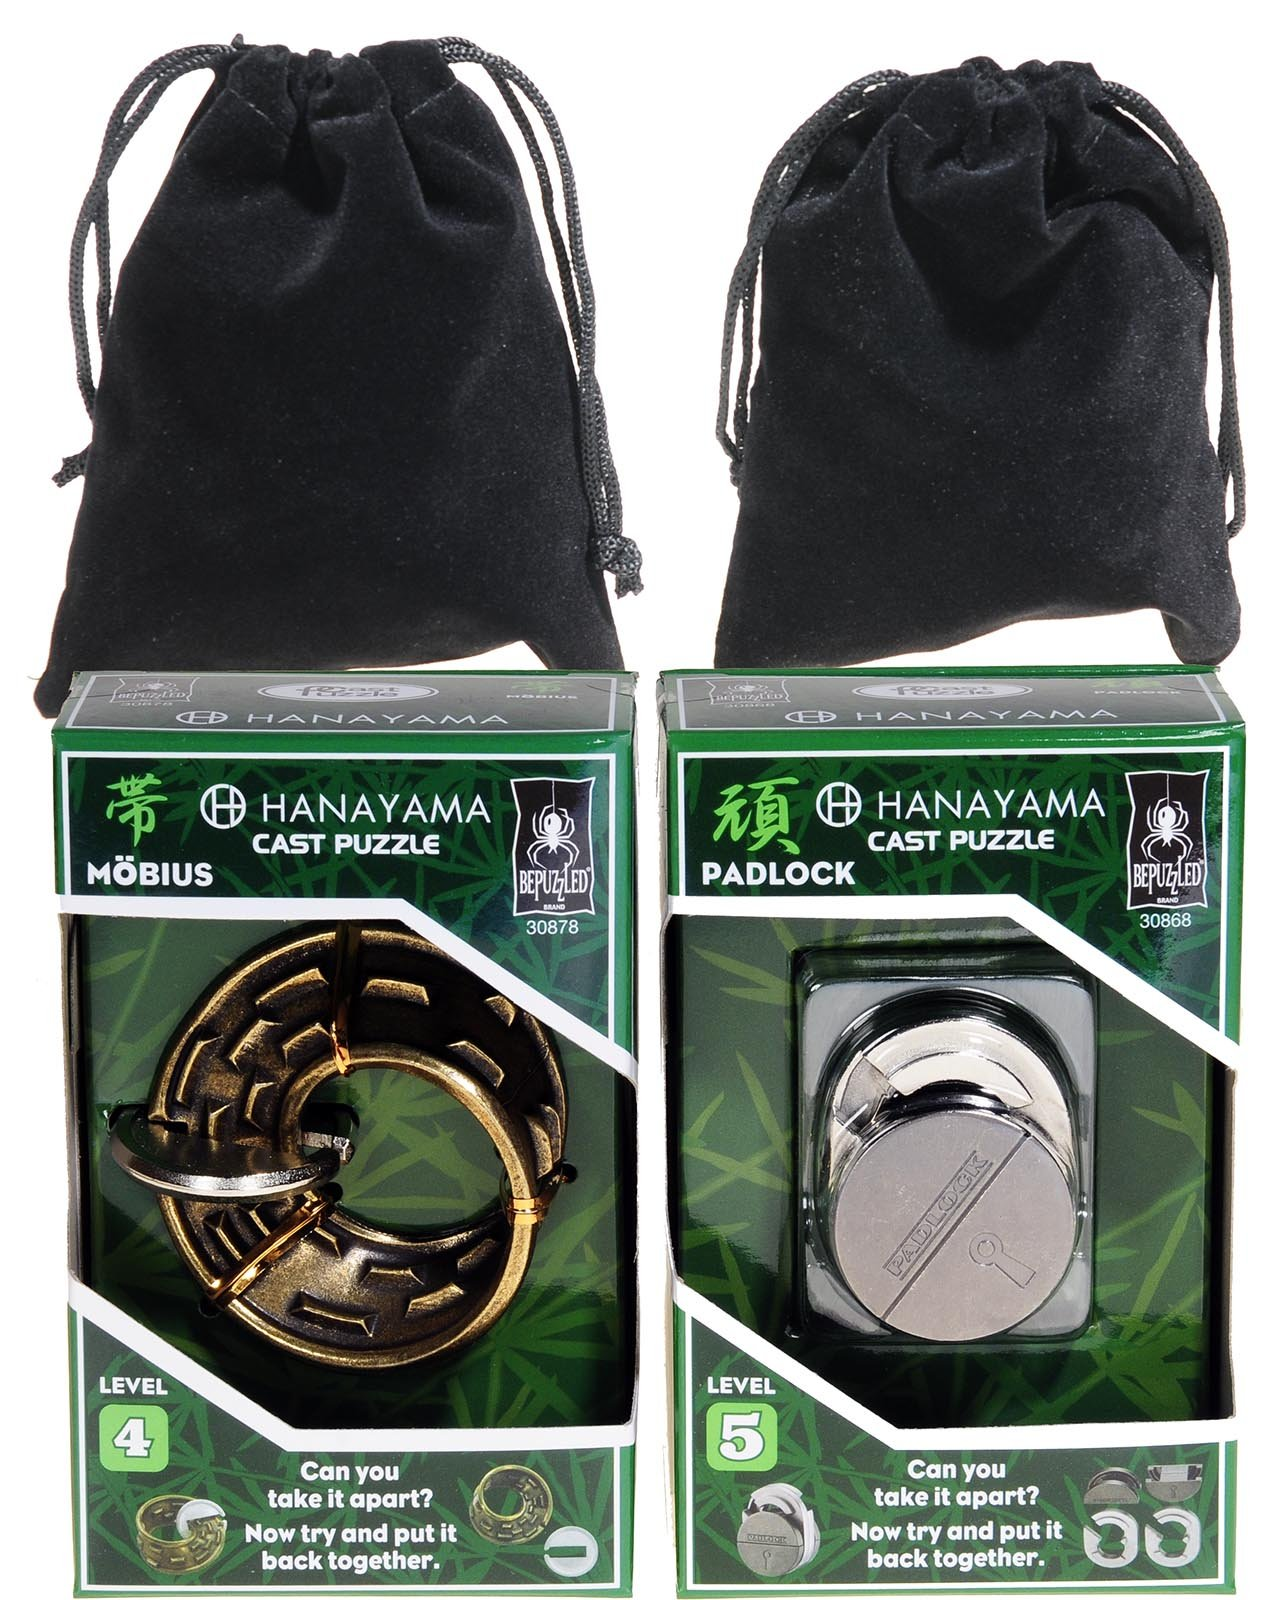 MOBIUS & PADLOCK Hanayama Cast Metal Brain Teaser Puzzle Pack _ New 2016 Designs_ Bonus 2 Black Velveteen Drawstring Pouches _ Bundled Items by Deluxe Games and Puzzles